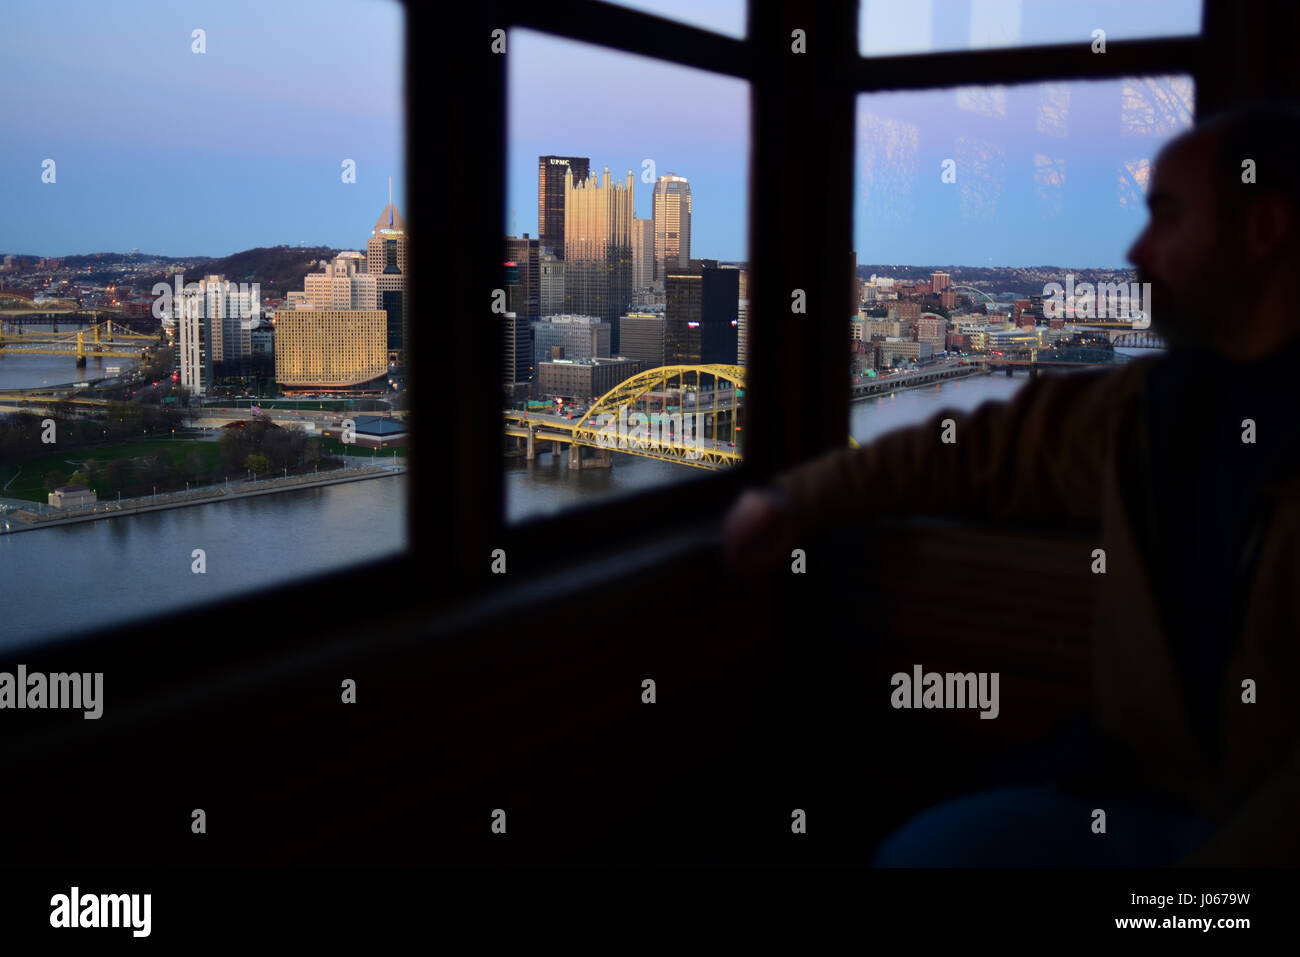 USA Pennsylvania PA Pittsburgh Riding The Duquesne Incline view of the city at dusk - Stock Image